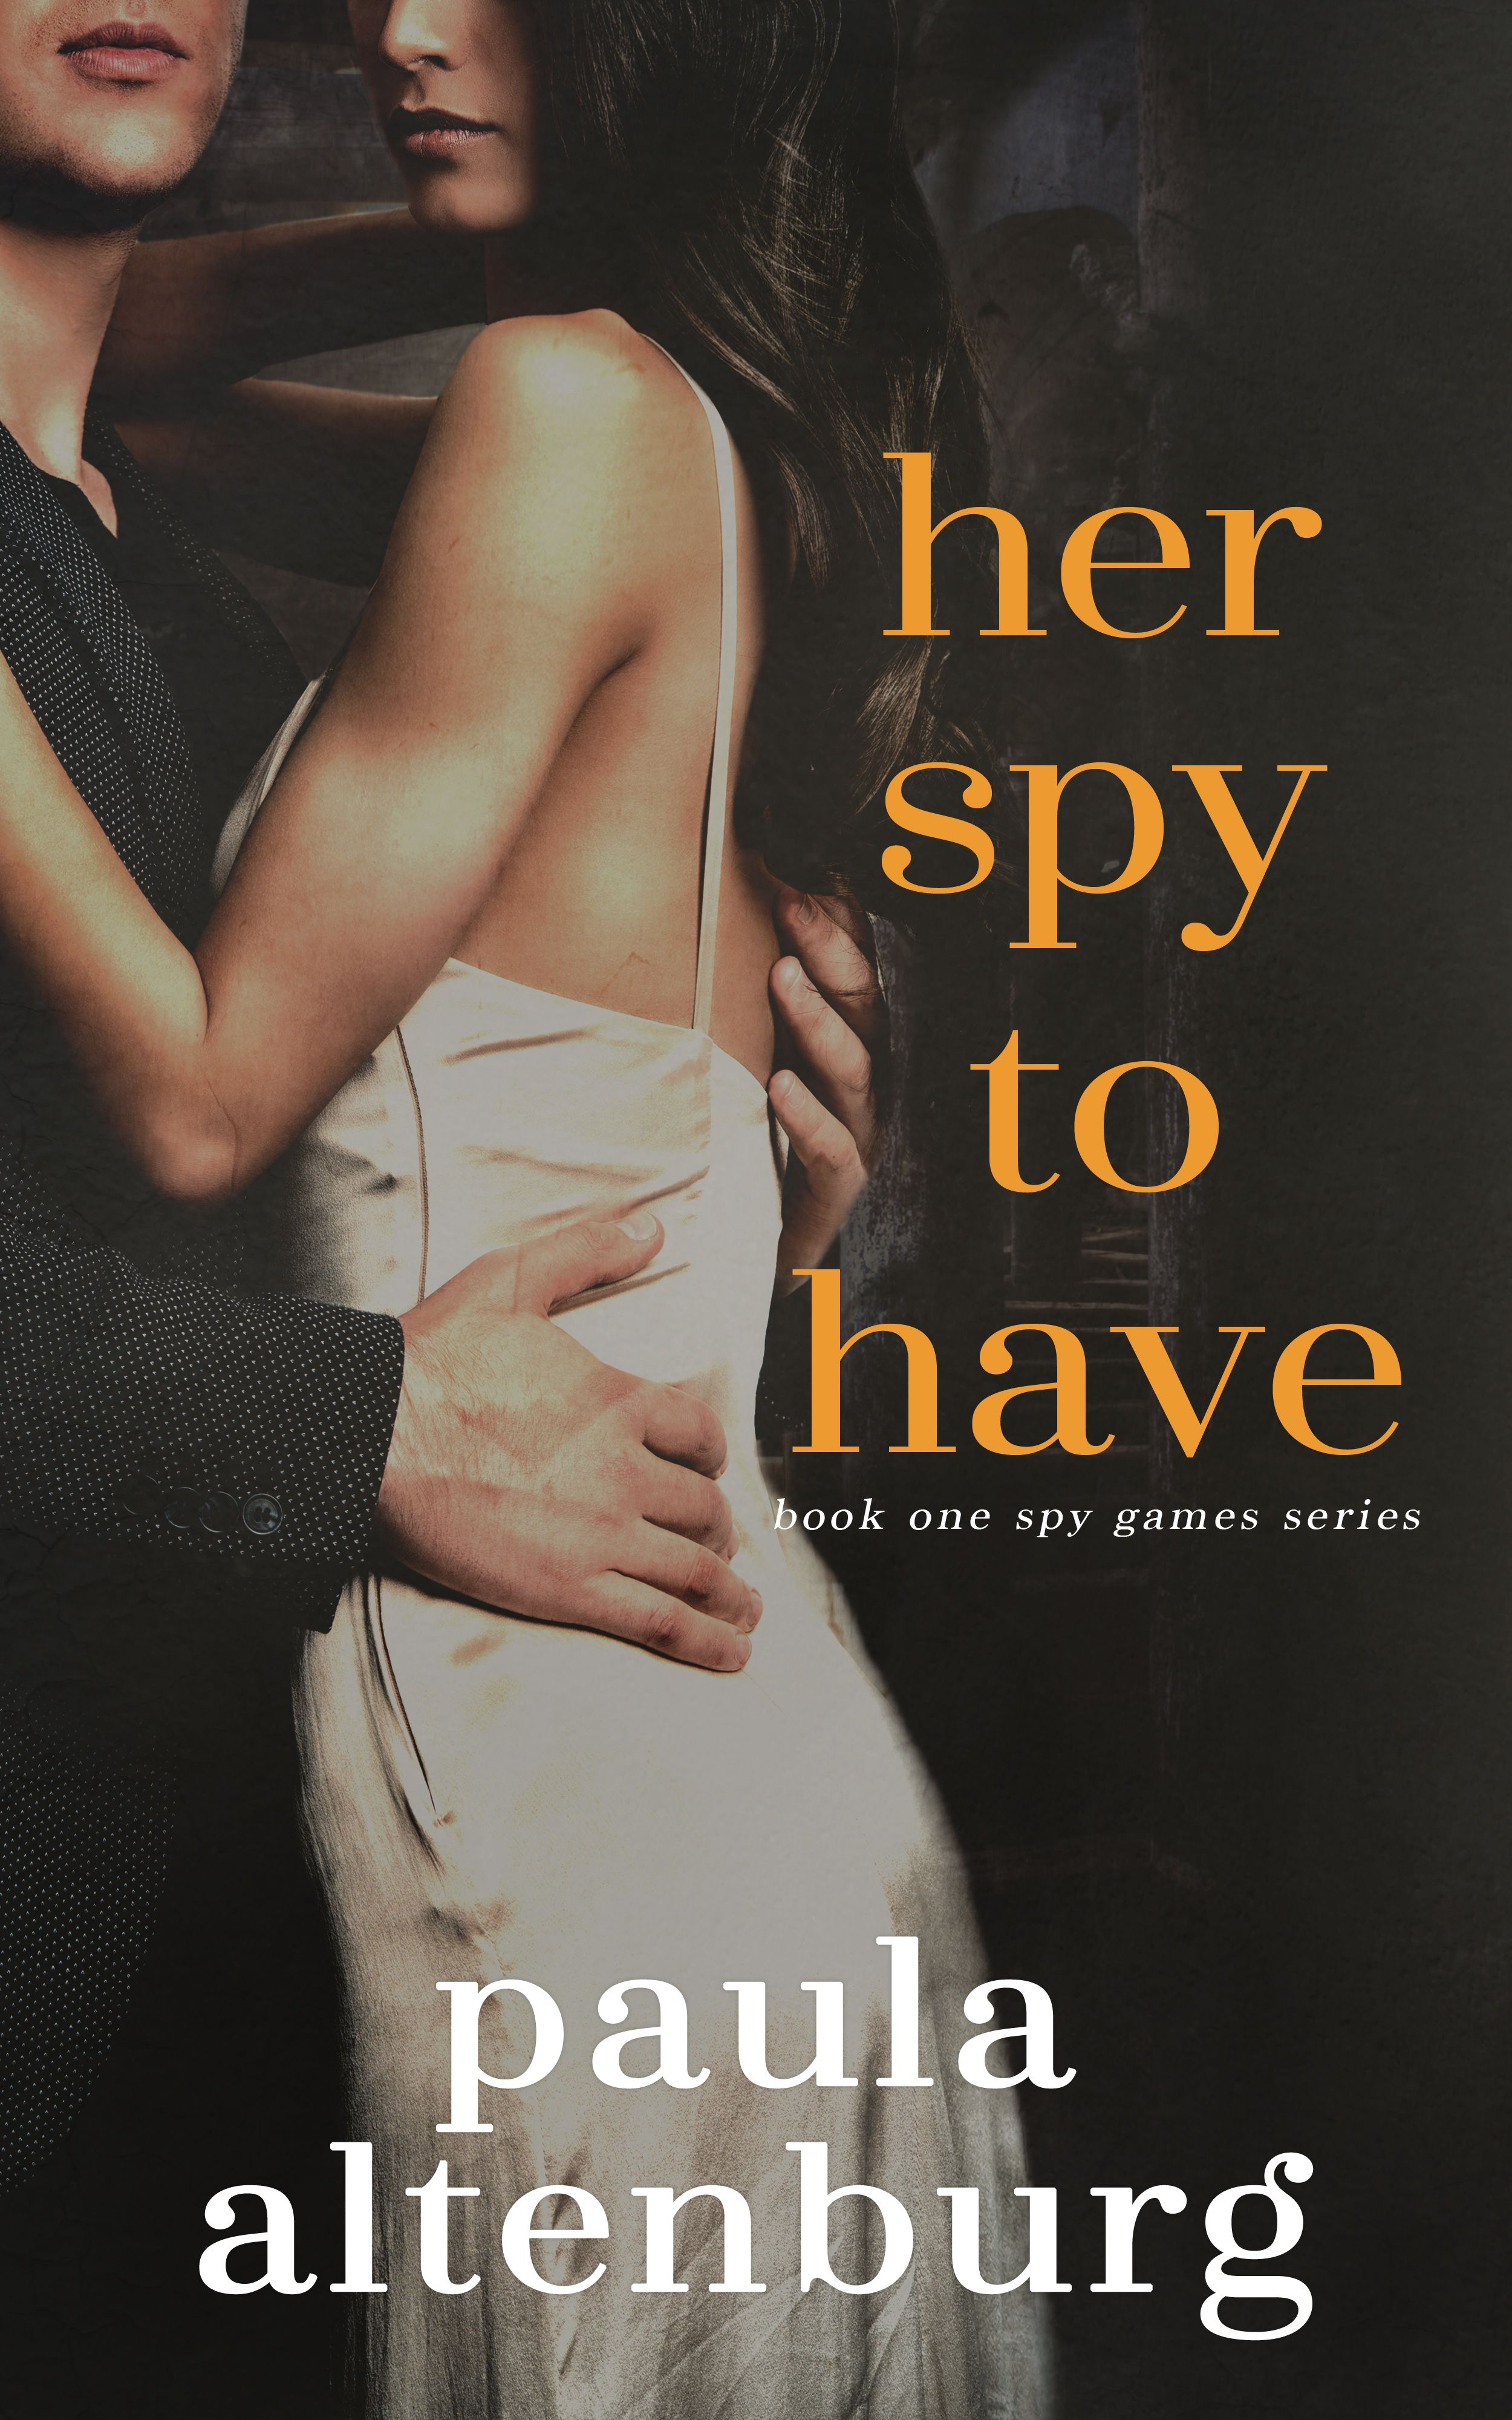 Her Spy To Have Games By Paula Altenburg Series Genre Contemporary Romantic Suspense Release Date March